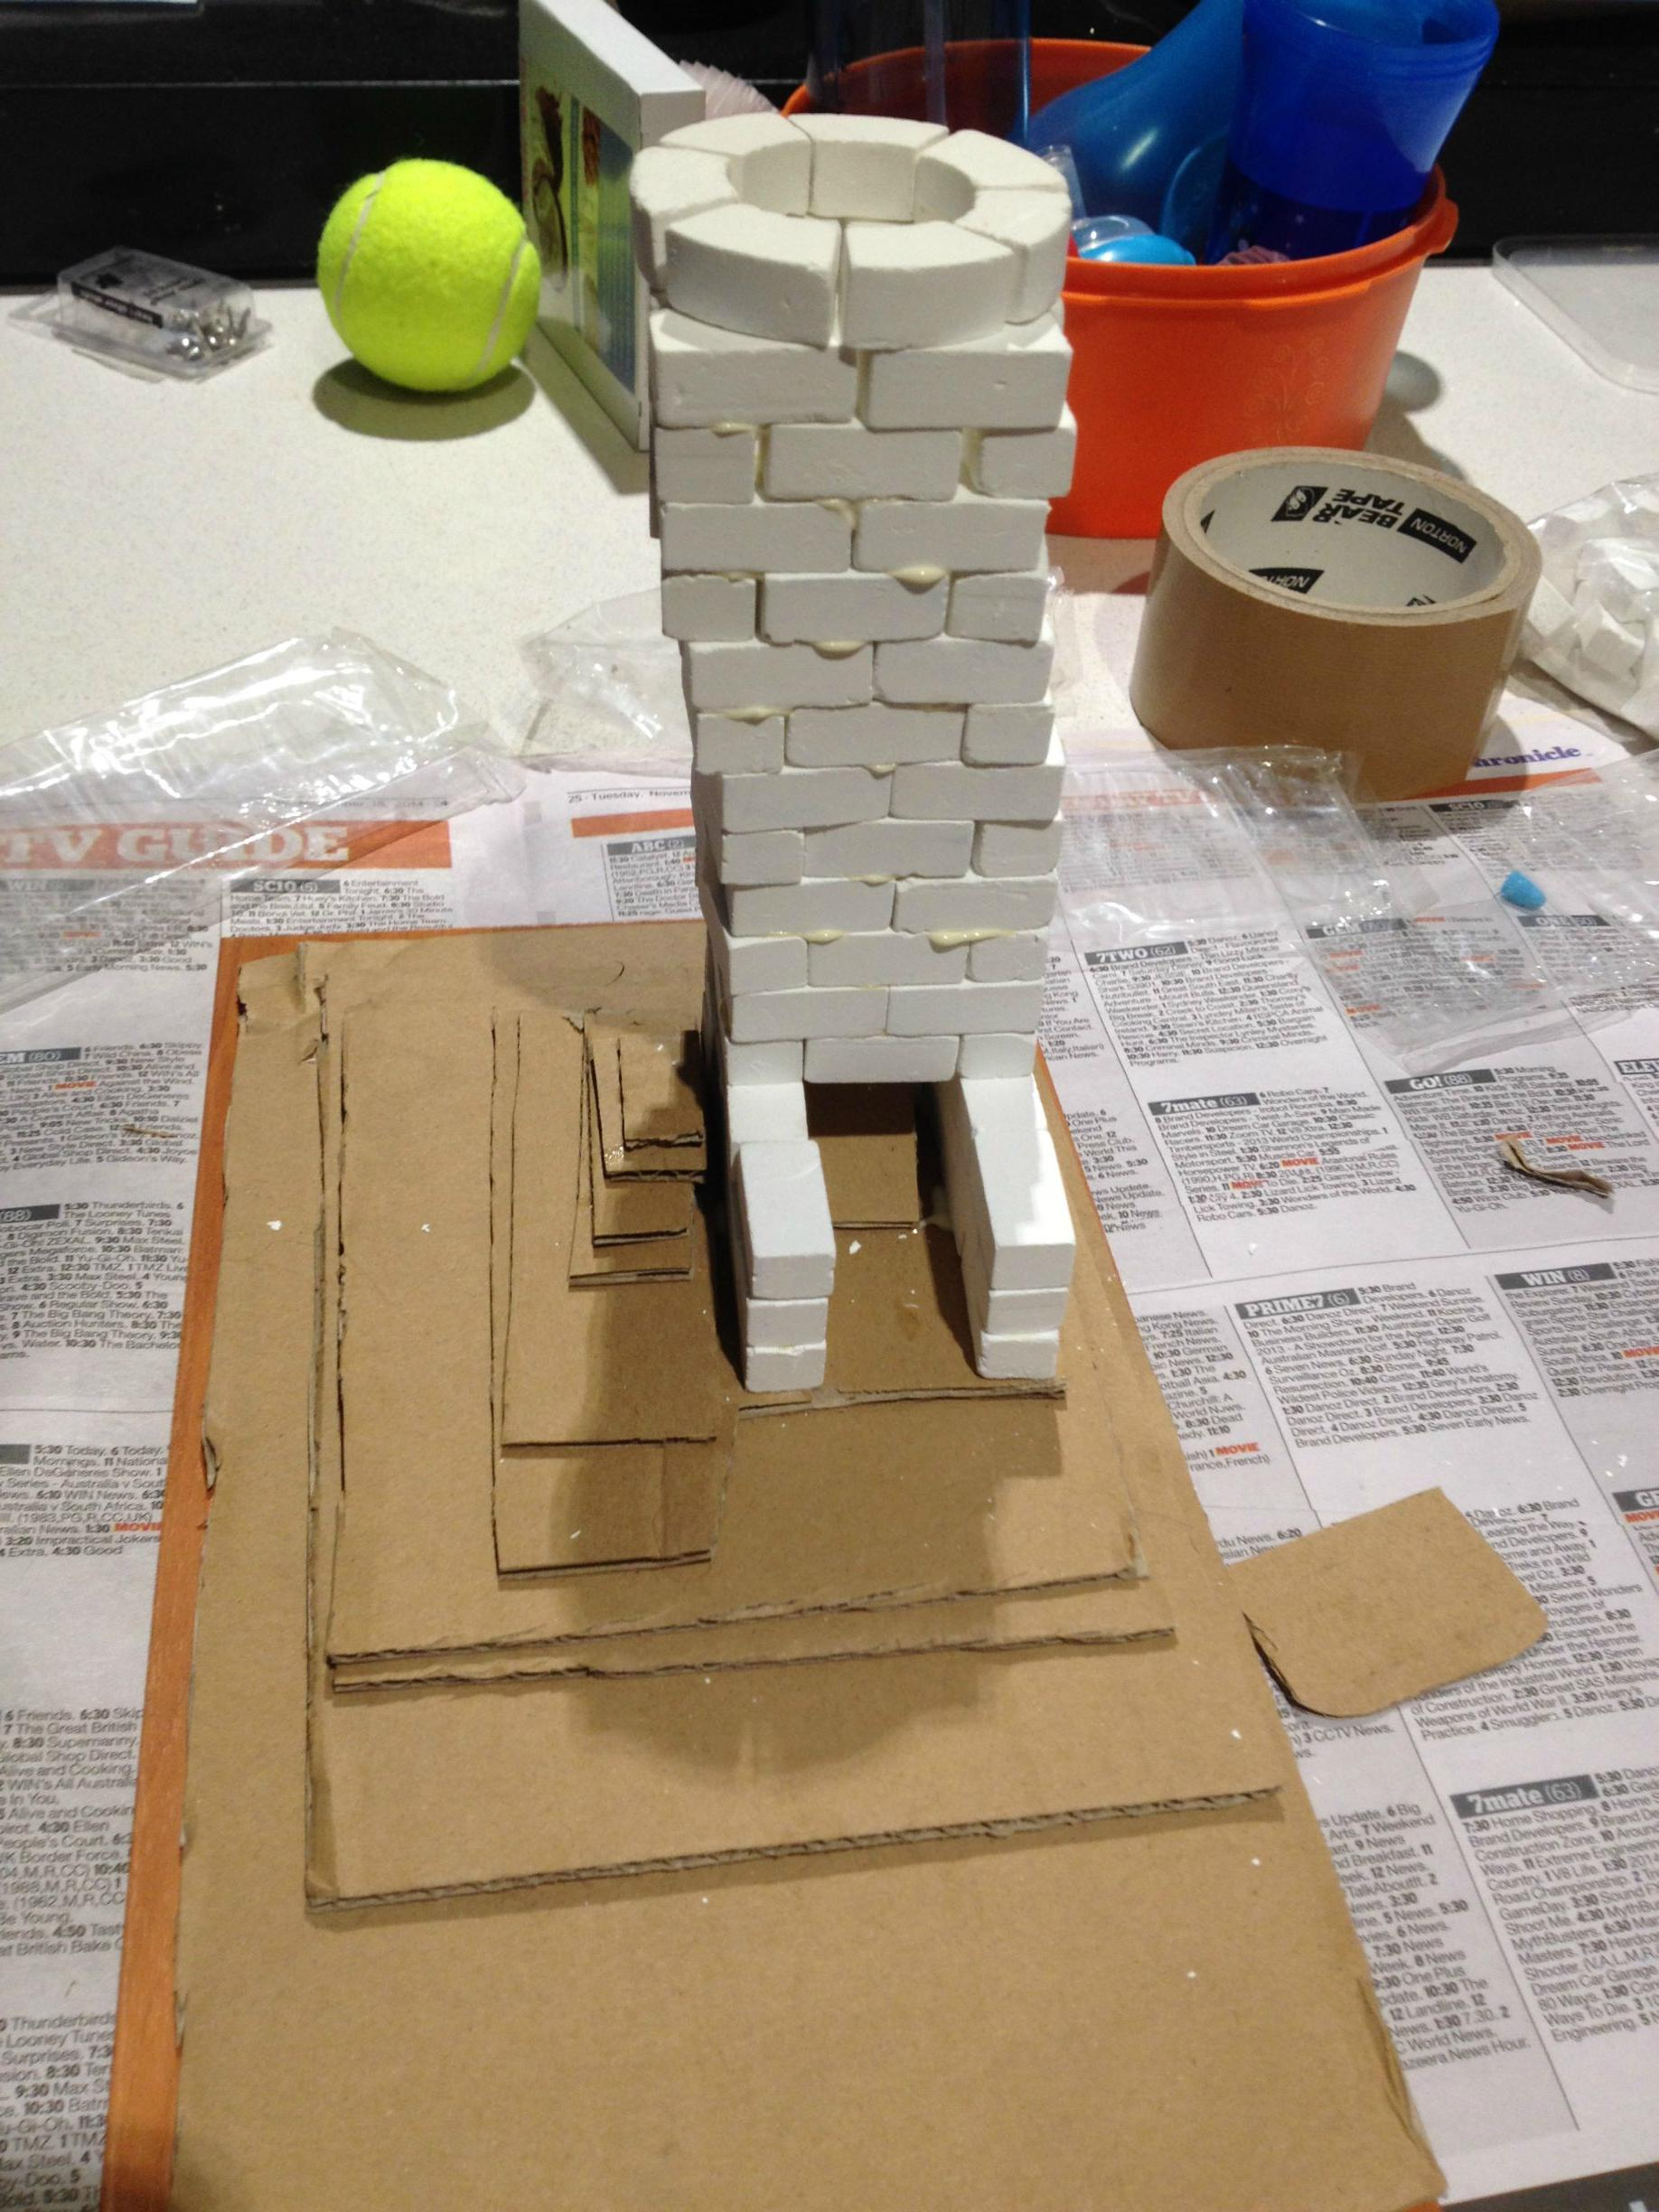 04 - The Tower